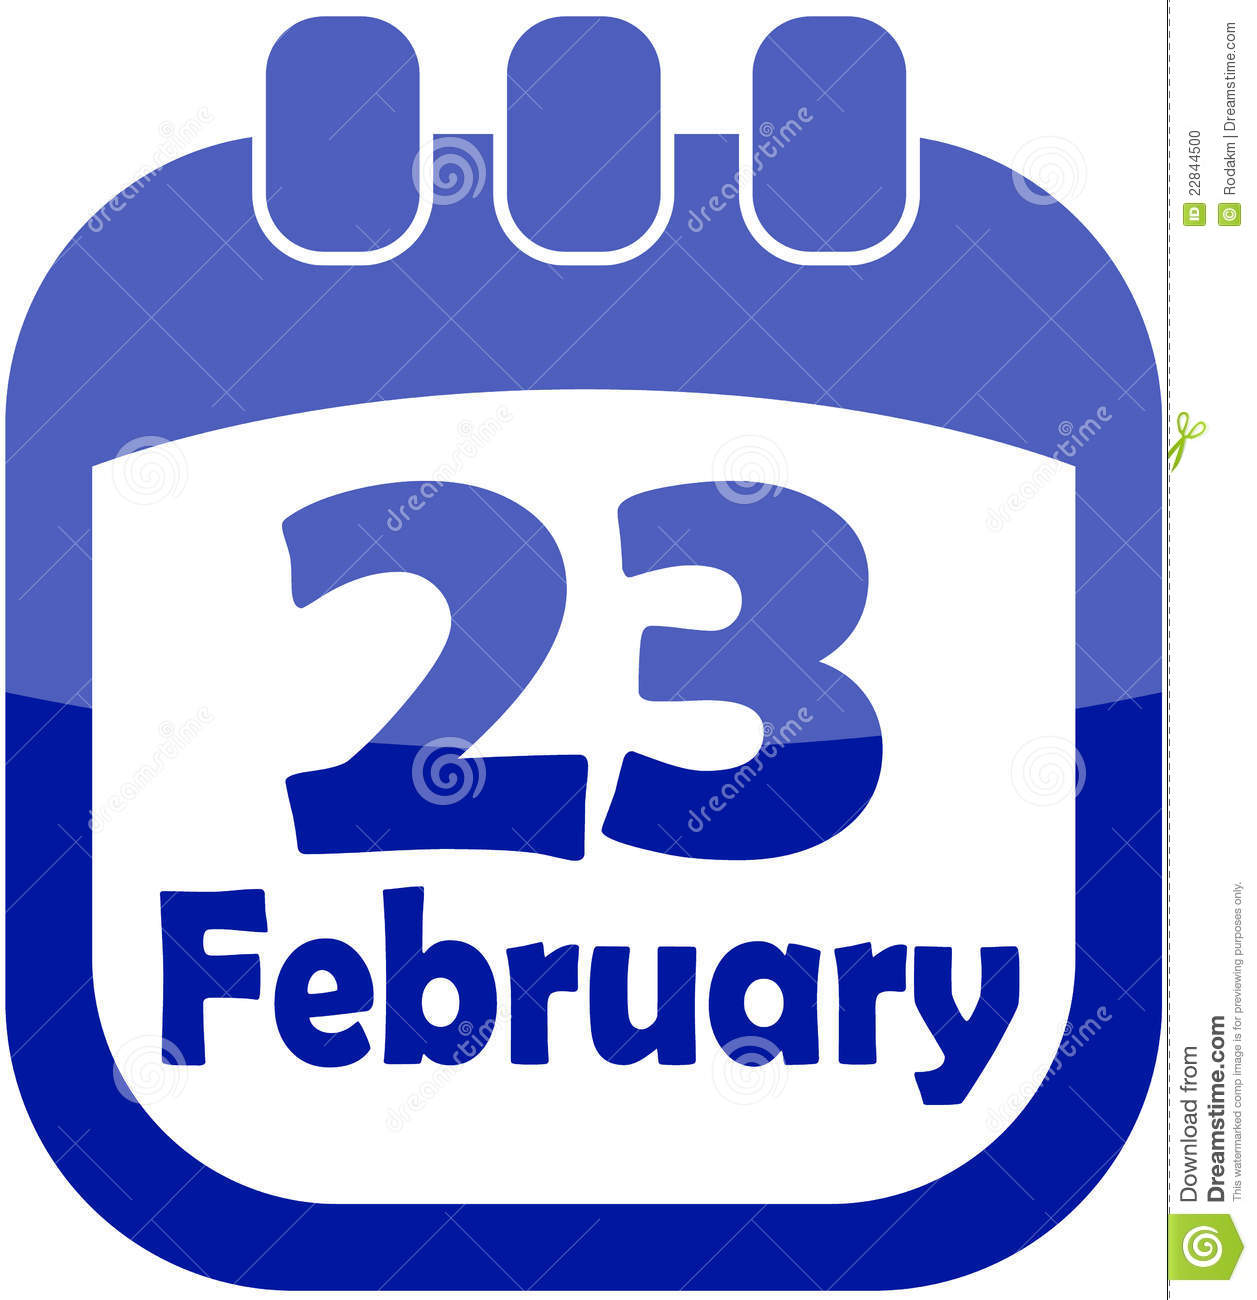 More similar stock images of ` Icon February 23 calendar `